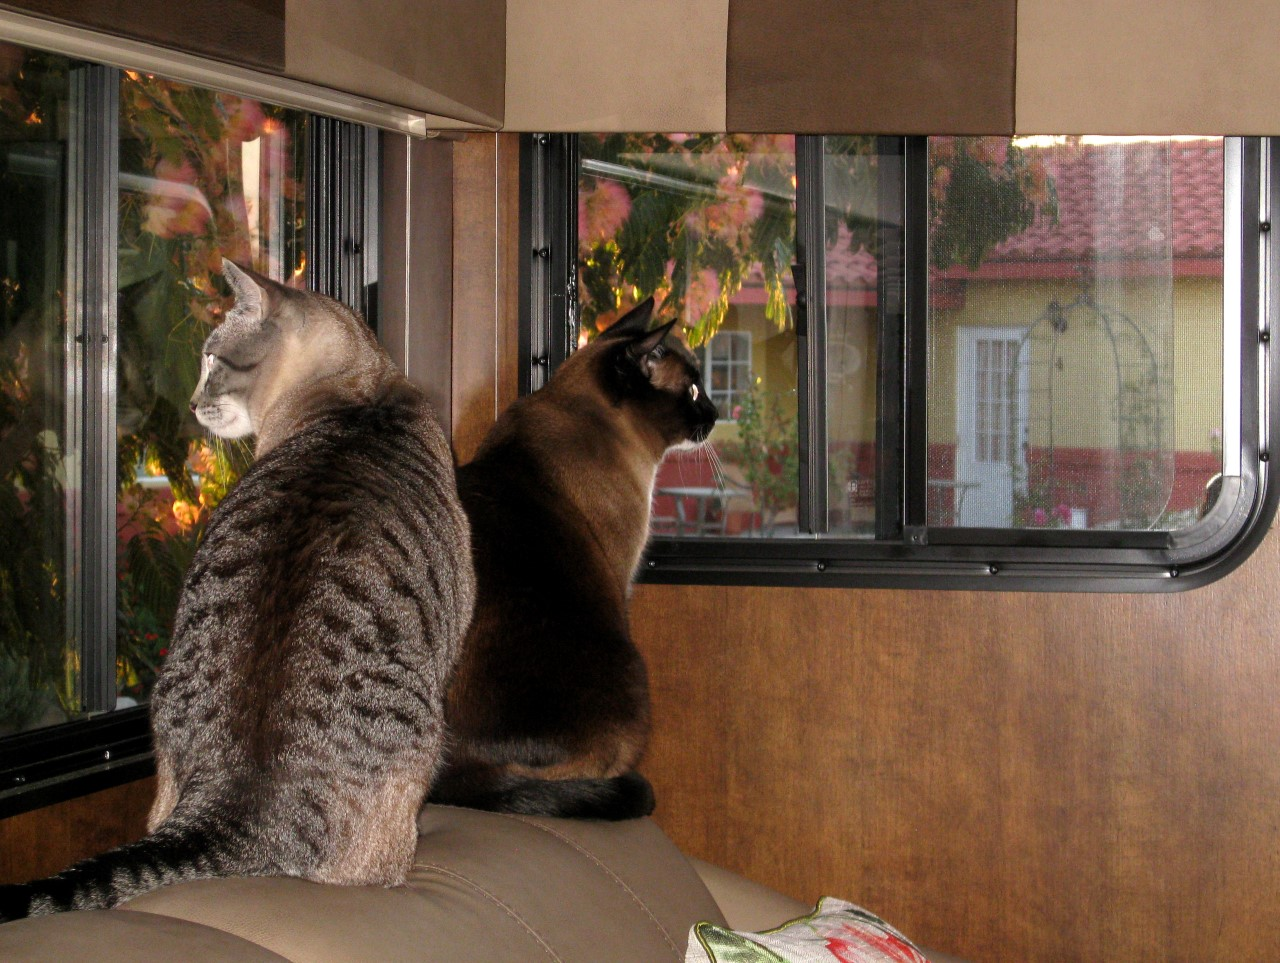 Cats Cooper and Barley looking out RV window